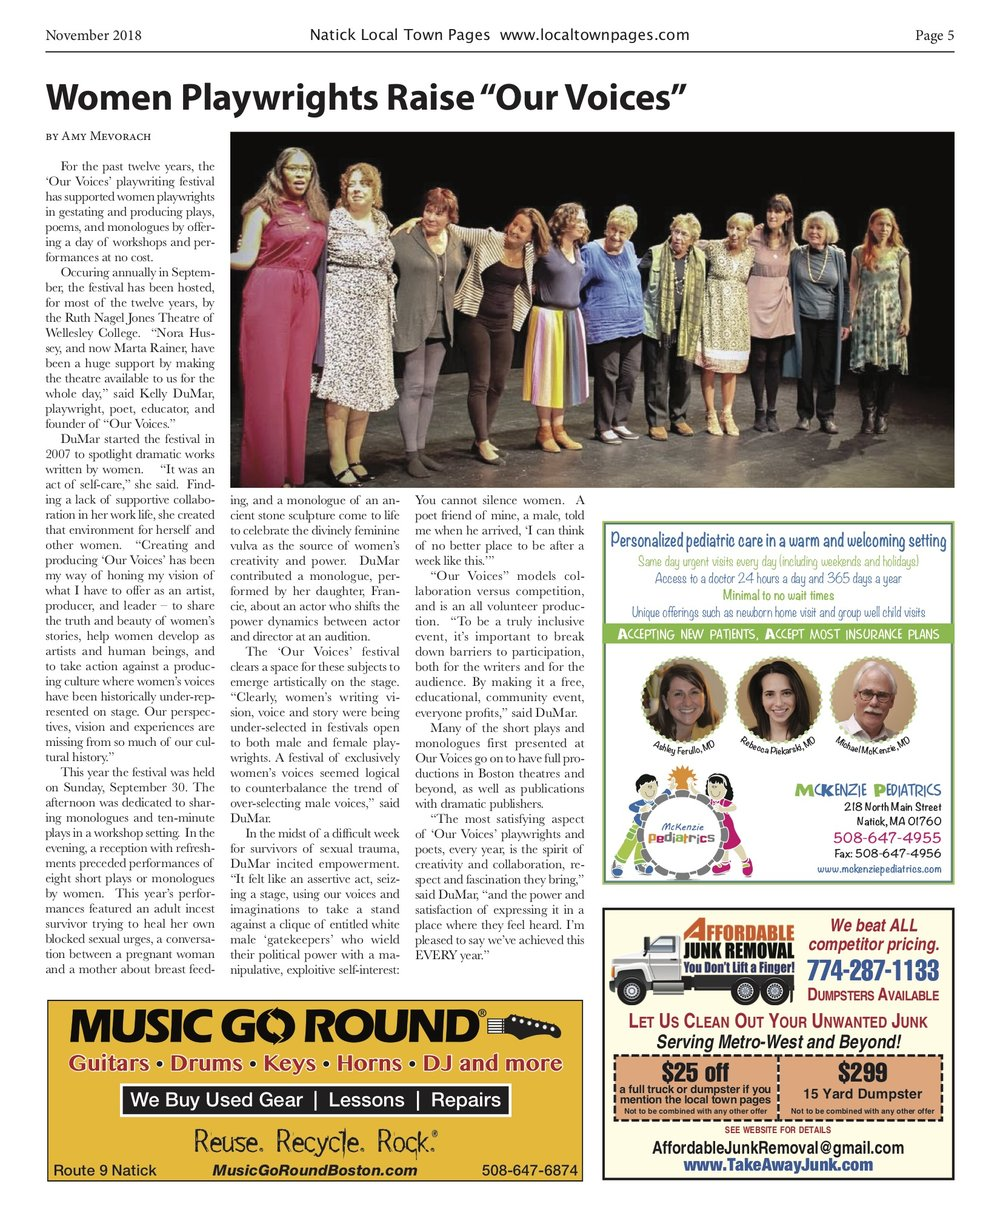 http://www.localtownpages.com/content/women-playwrights-raise-%E2%80%9Cour-voices%E2%80%9D?fbclid=IwAR0yVsDnWpa6TT4xgZkJ4SOGYqCq-EnAlYxZymYpUc6bY4J_rN0EKY4rb2s